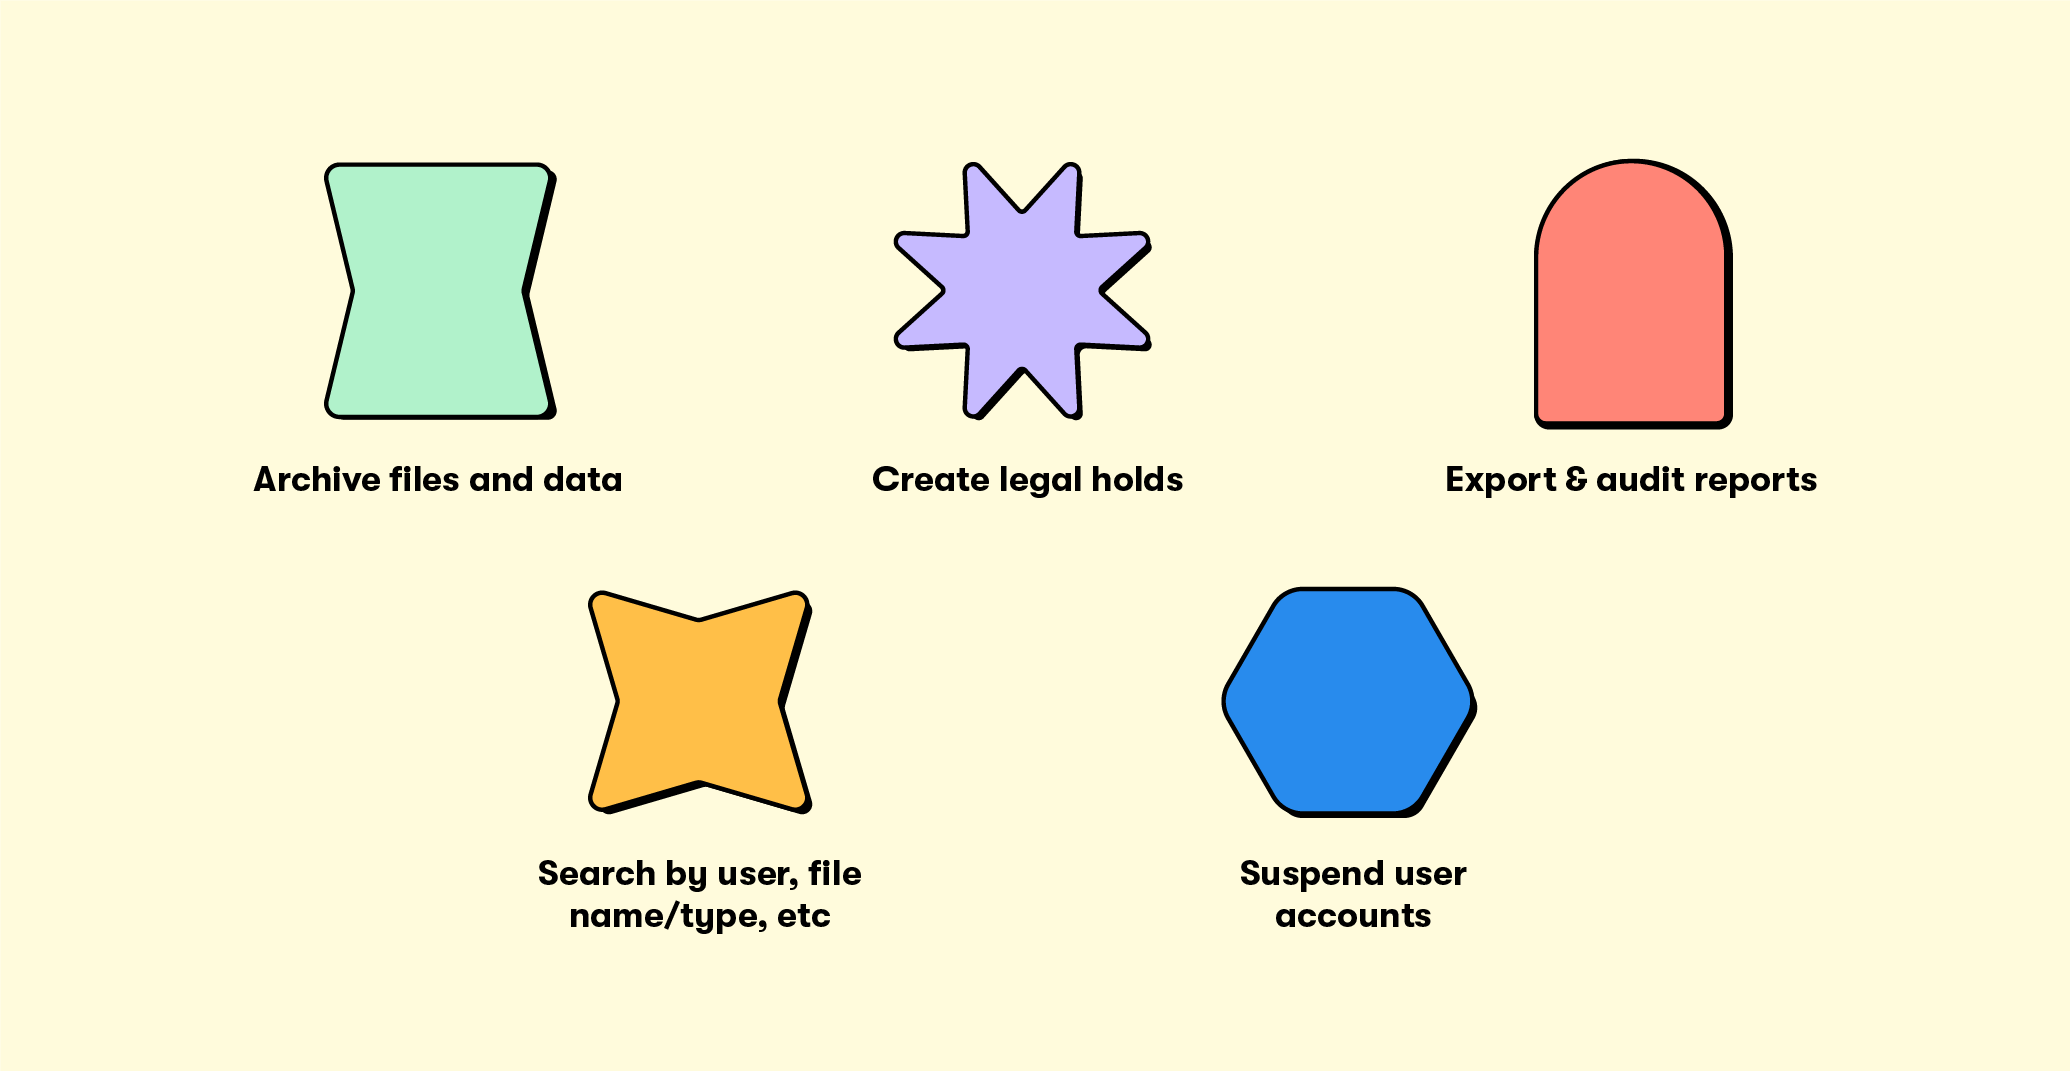 Icons illustrating the tasks a Google admin can perform in Google Vault, such as archiving files and data, creating legal holds, exporting and auditing reports, and so forth. Green, purple, red, yellow, and blue icons on a beige background. BrainStorm Inc. (9-15-2021)